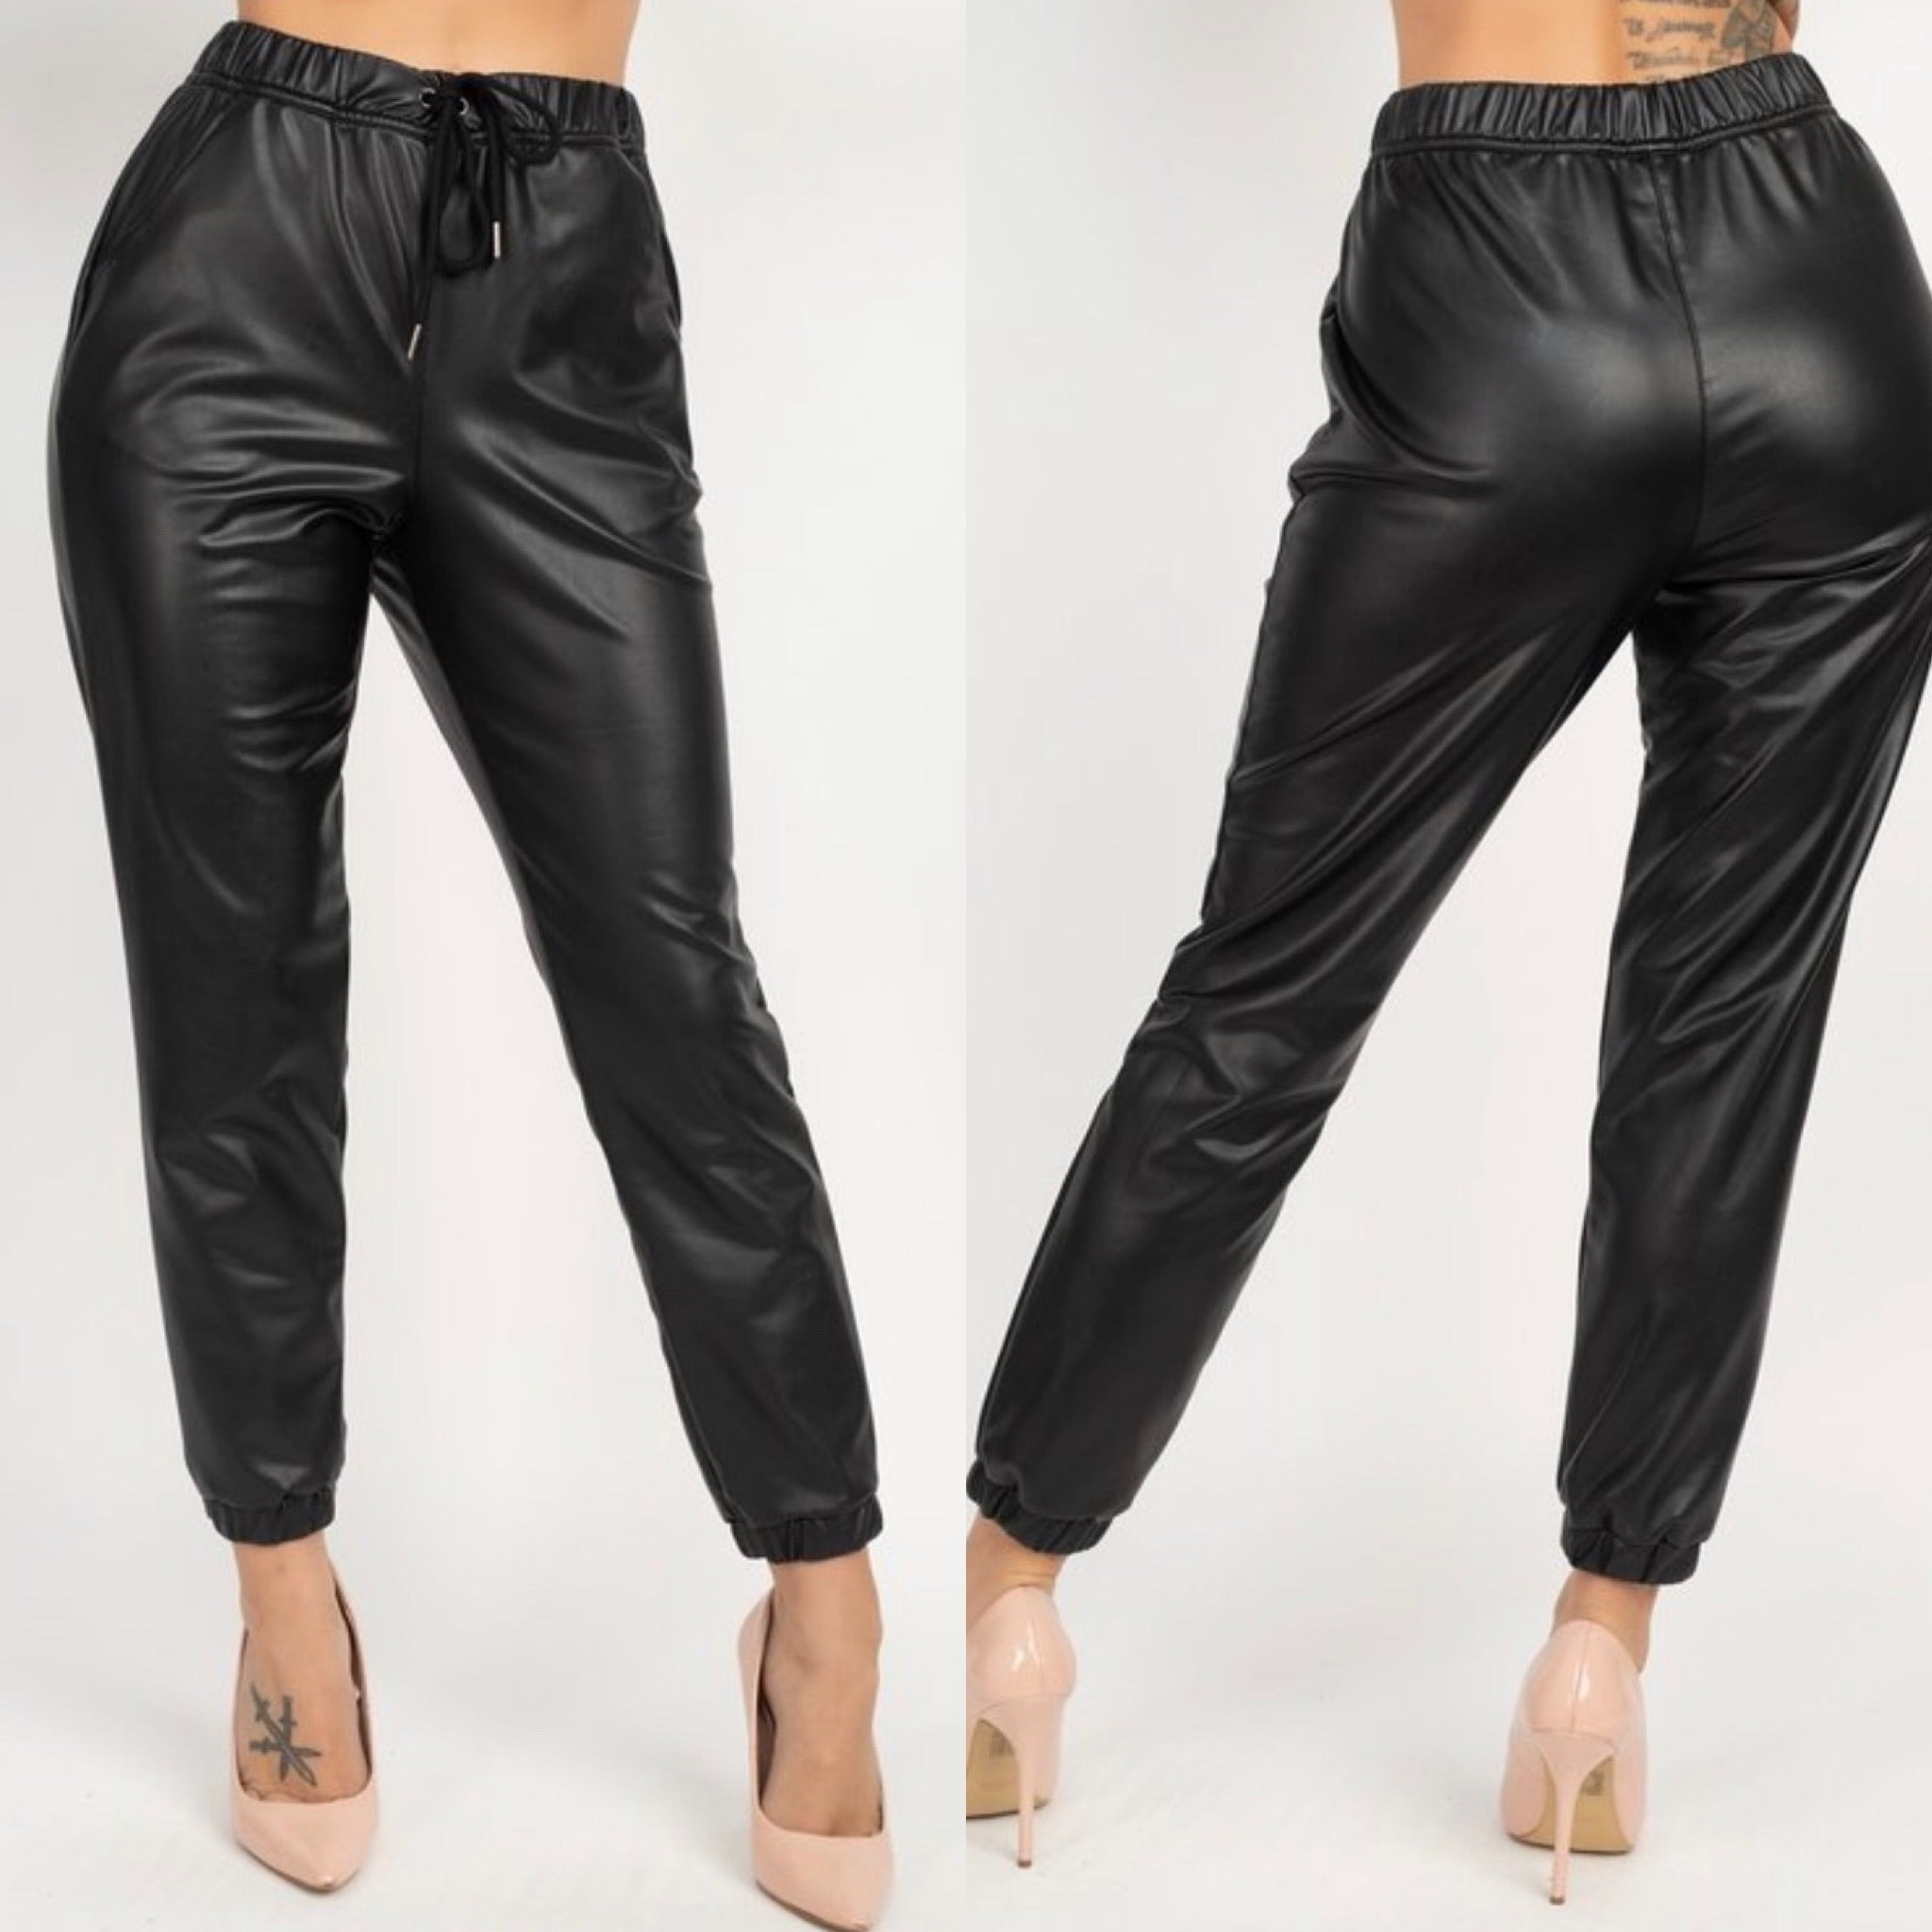 Allure Leatherette Leggings & Joggers